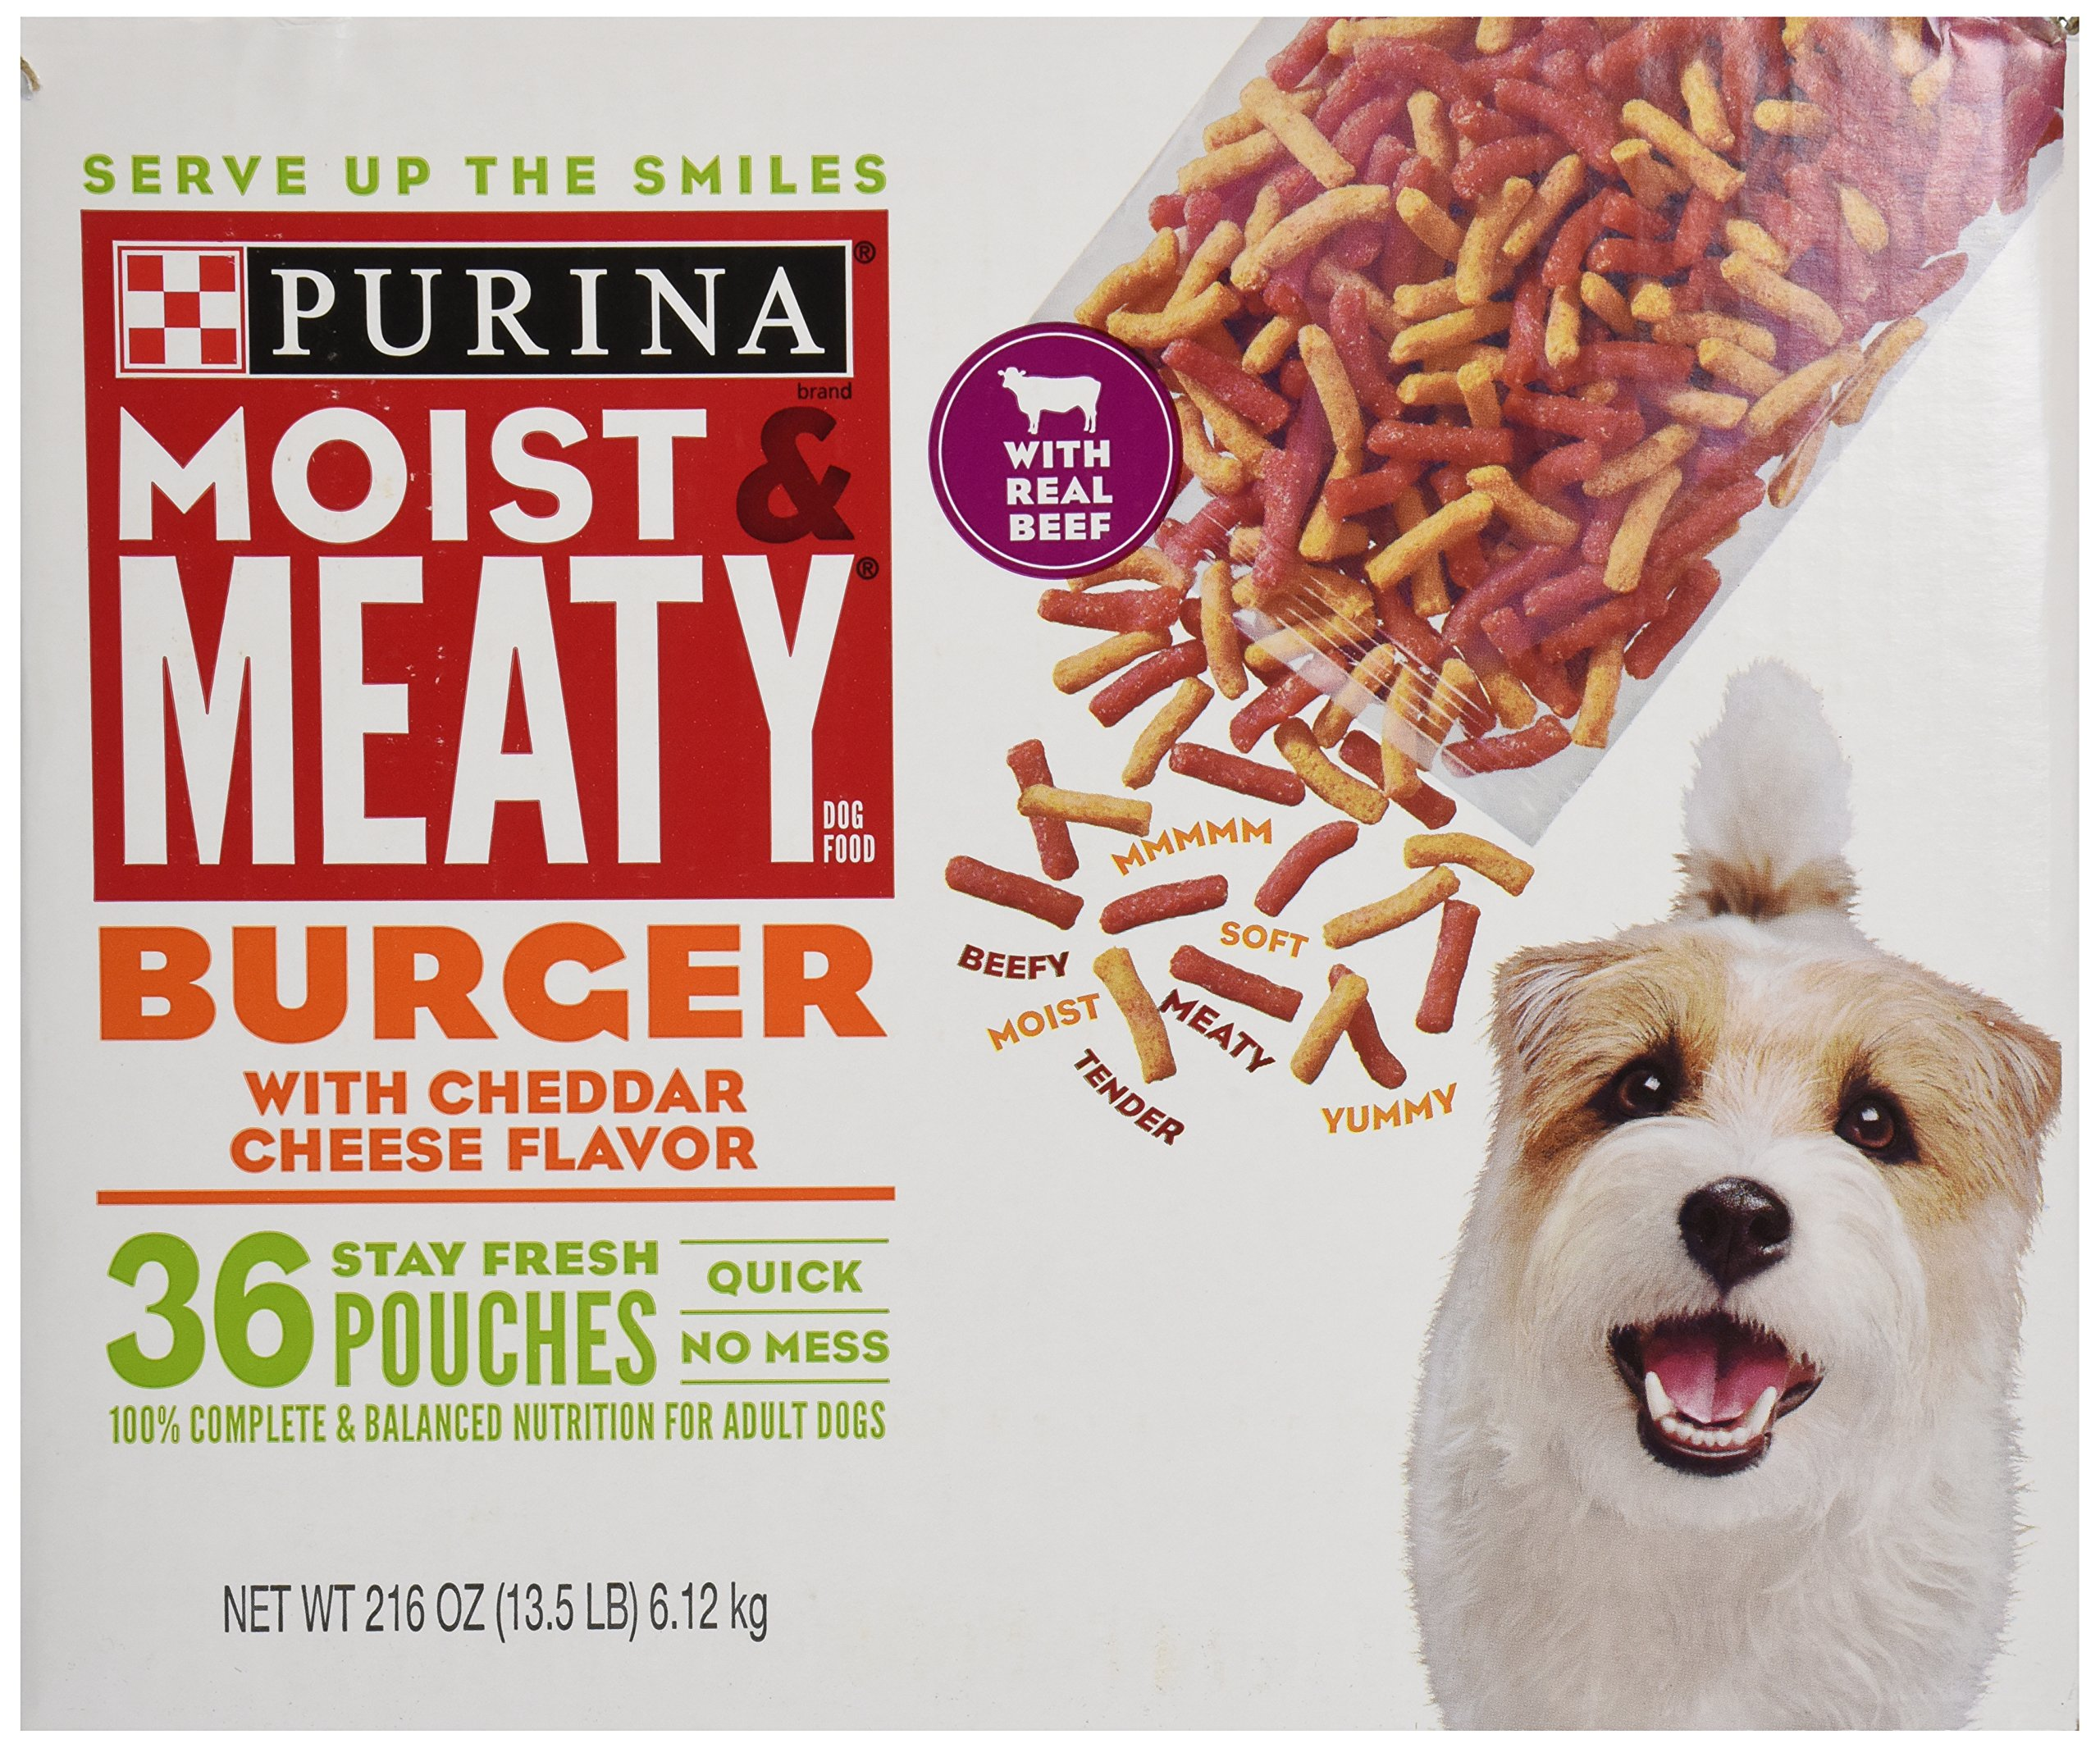 Purina Moist & Meaty Dog Food, Burger with Cheddar Cheese Flavor, 36 Pouches, 6 oz each